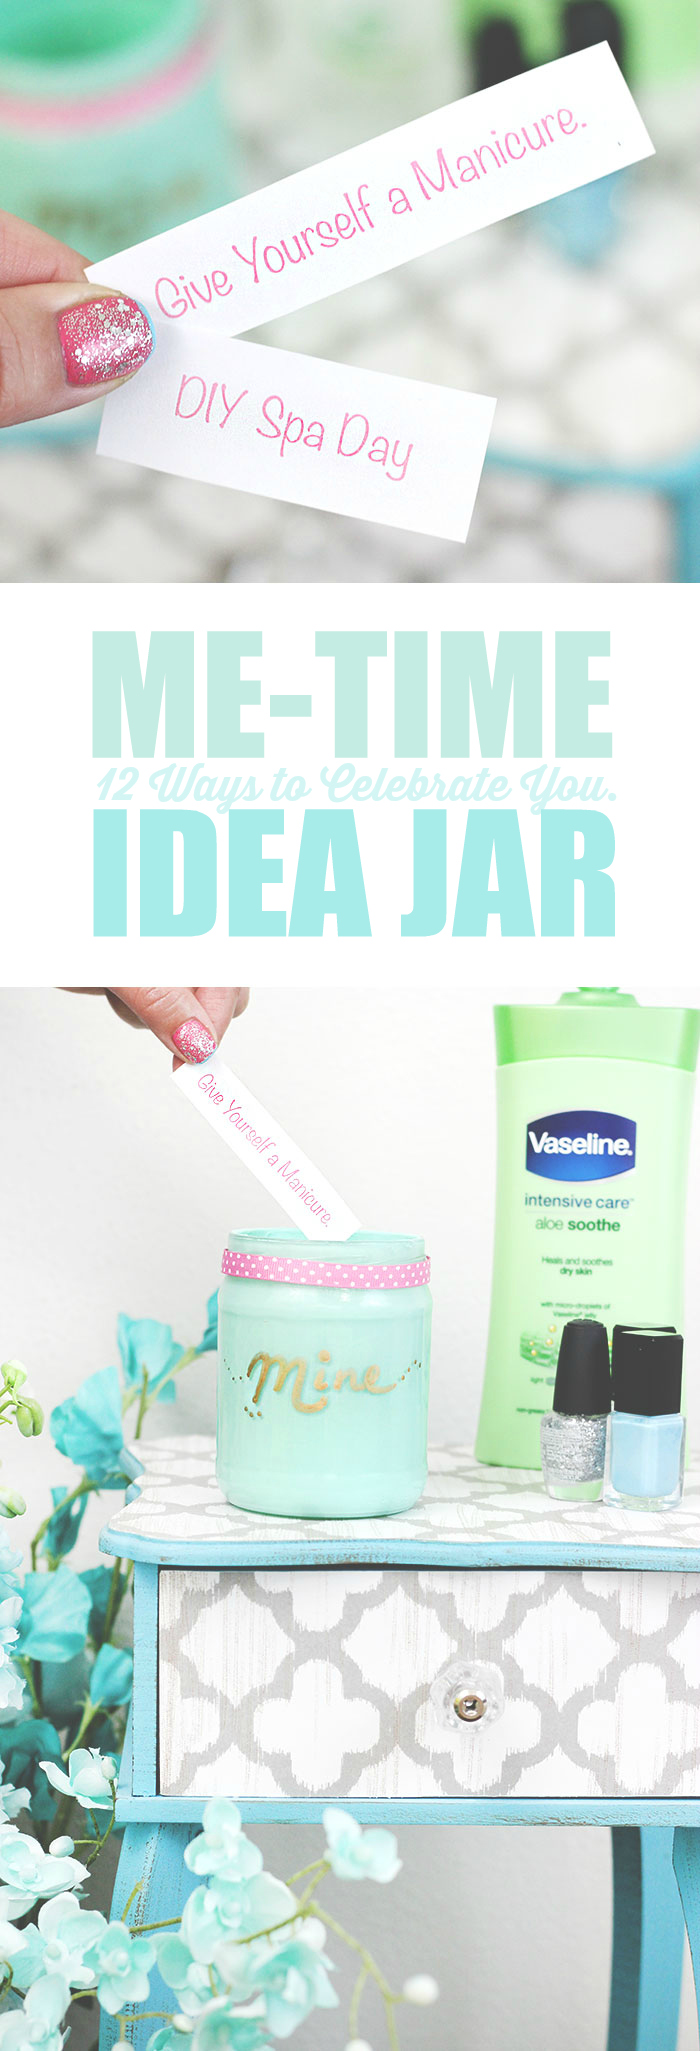 Feeling spent? Remind yourself to enjoy a break with a Me-Time Idea Jar + 12 ideas.